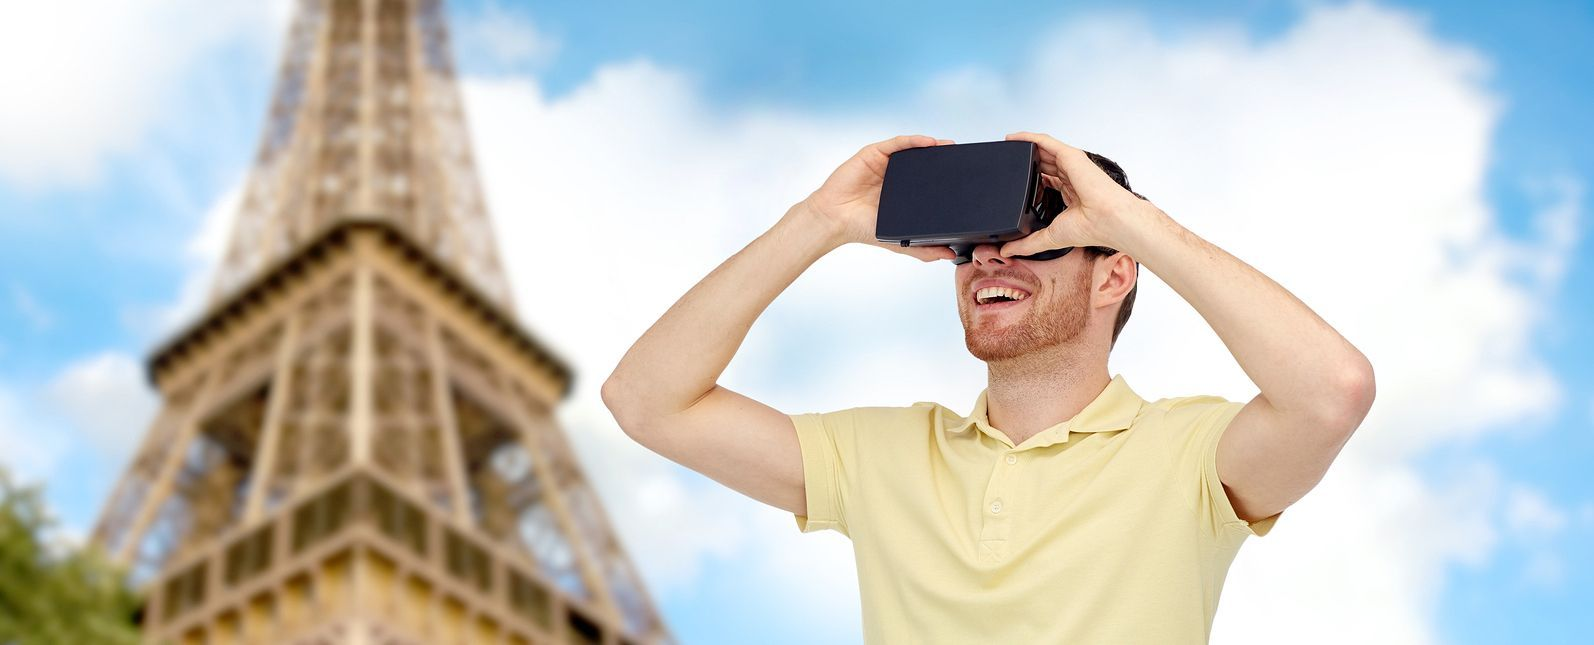 bigstock-d-technology-virtual-reality-132744593.jpg